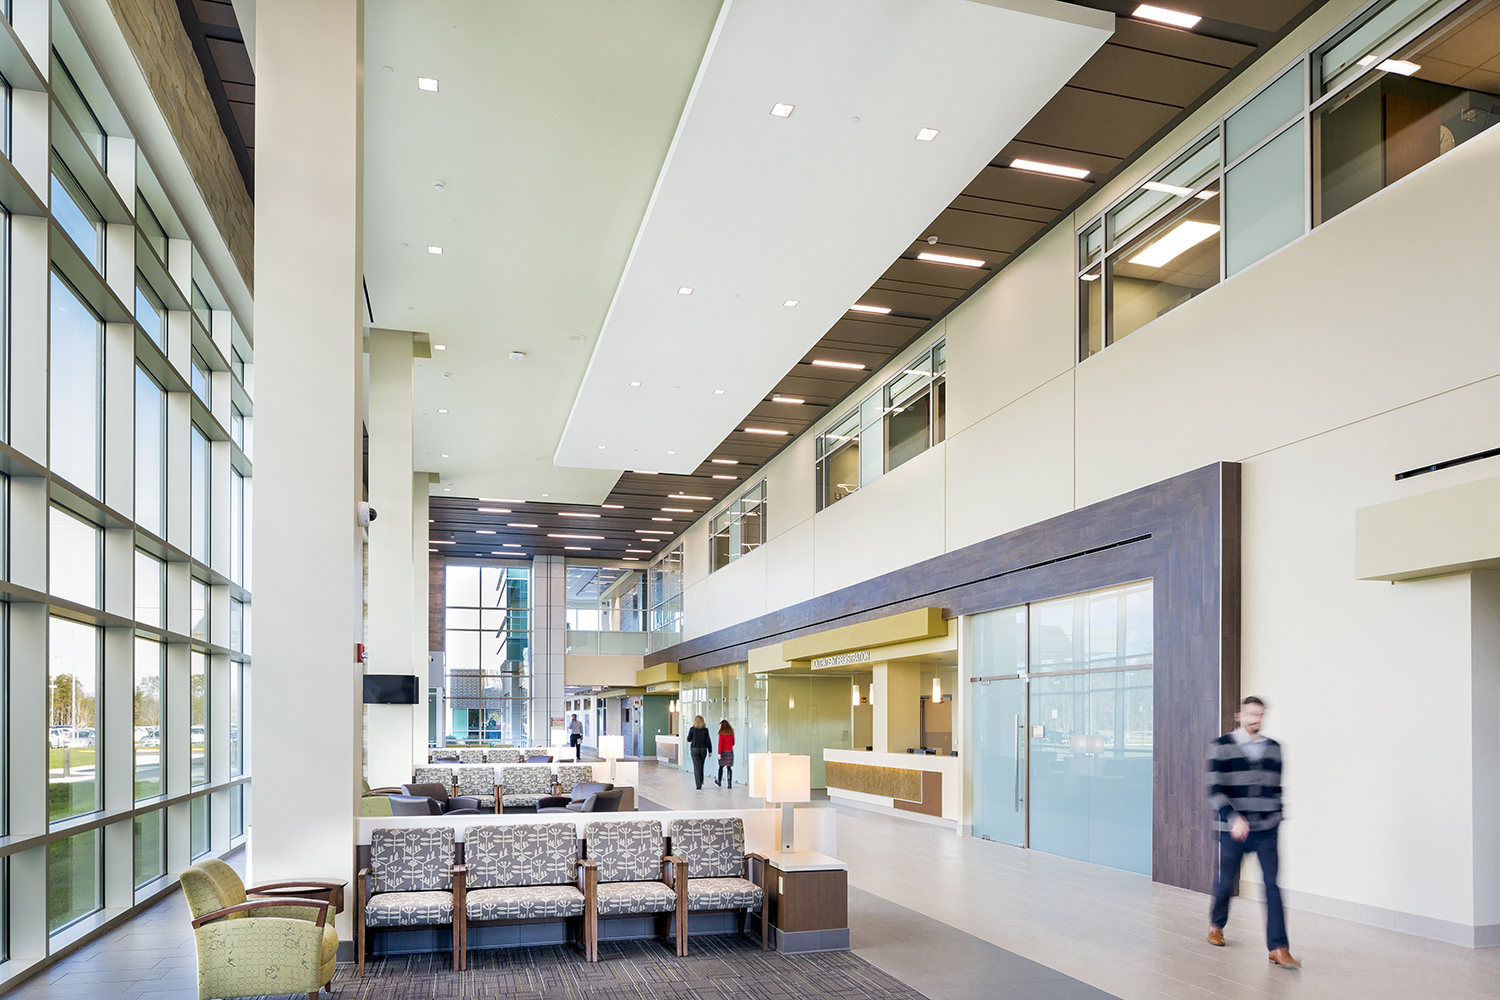 Serenity table lamps provide comforting healthcare design in a large waiting area and hospital corridor.